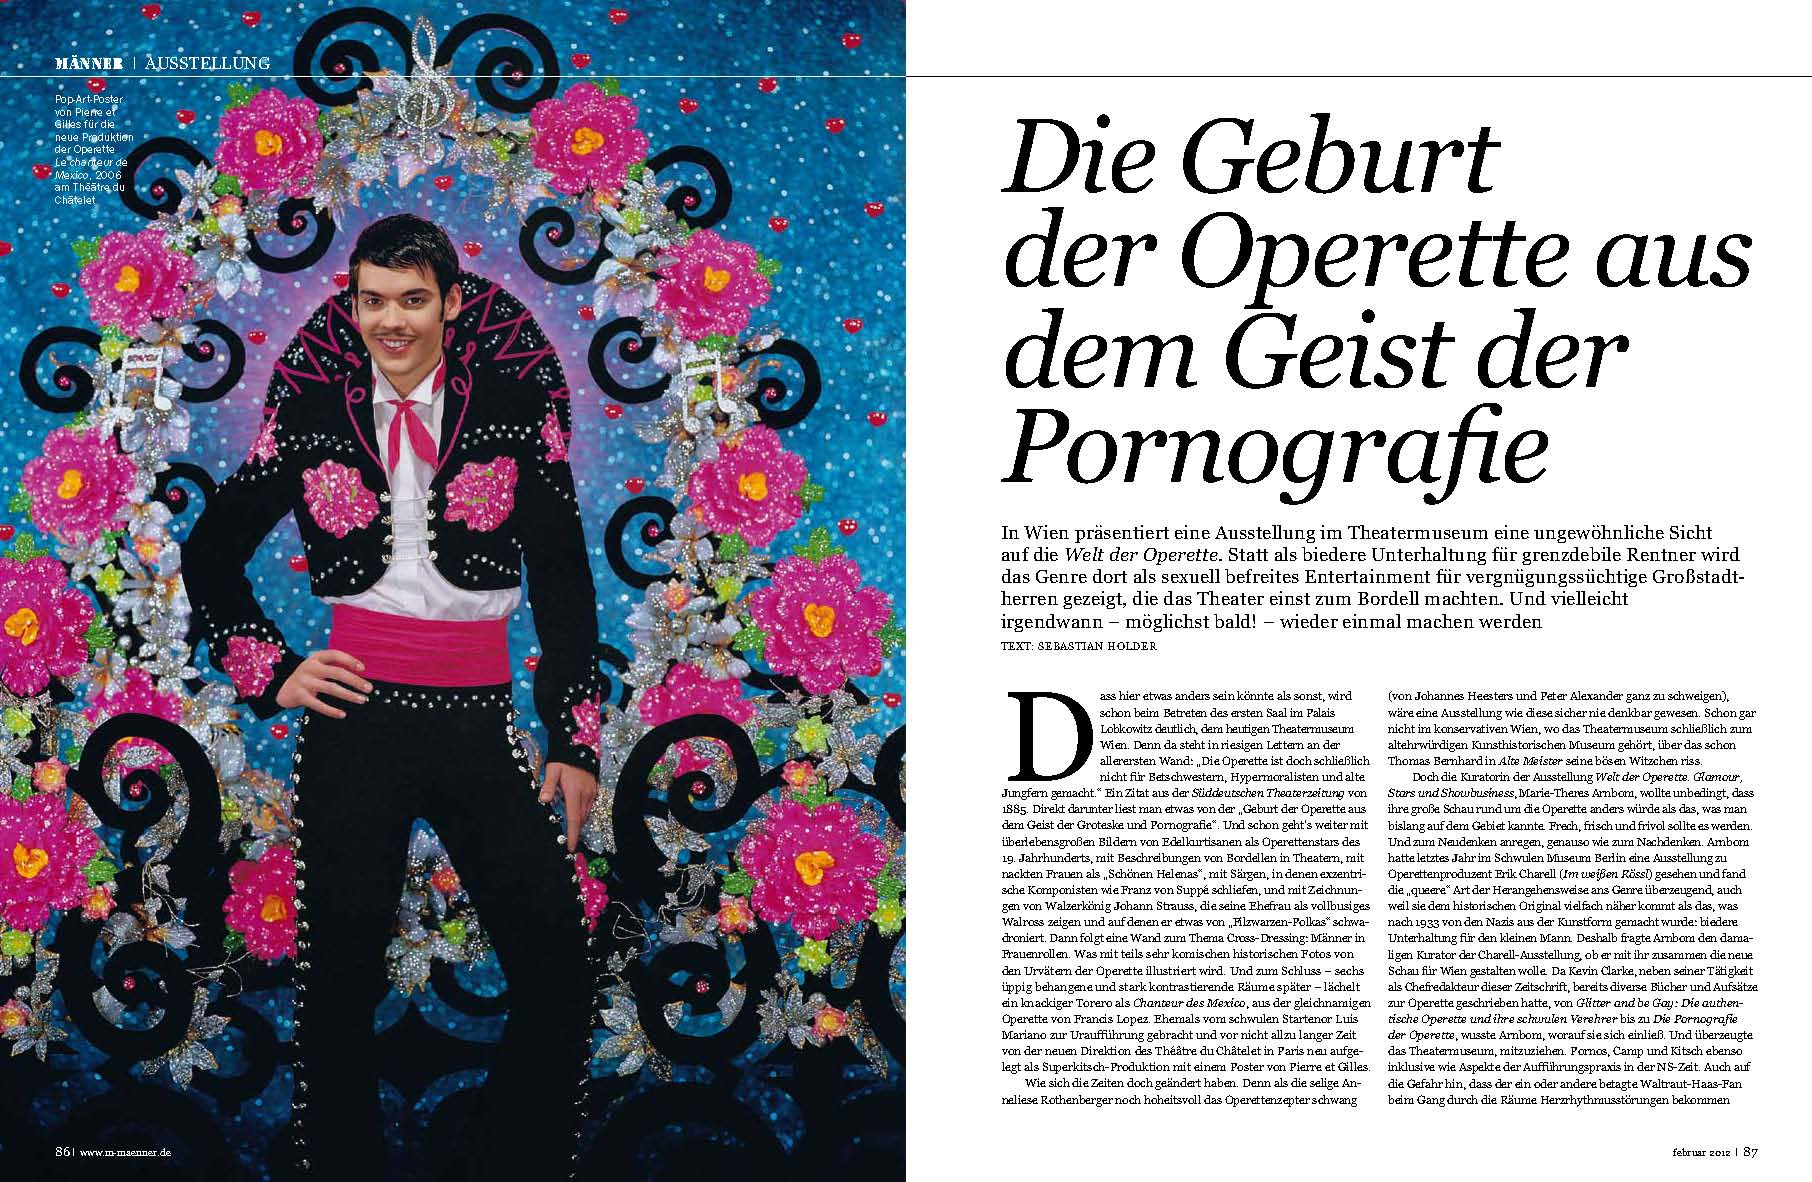 "A feature story in MÄNNER magazine dealing with operetta and the exhibition ""Welt der Operette"" at the Theatermuseum Wien."